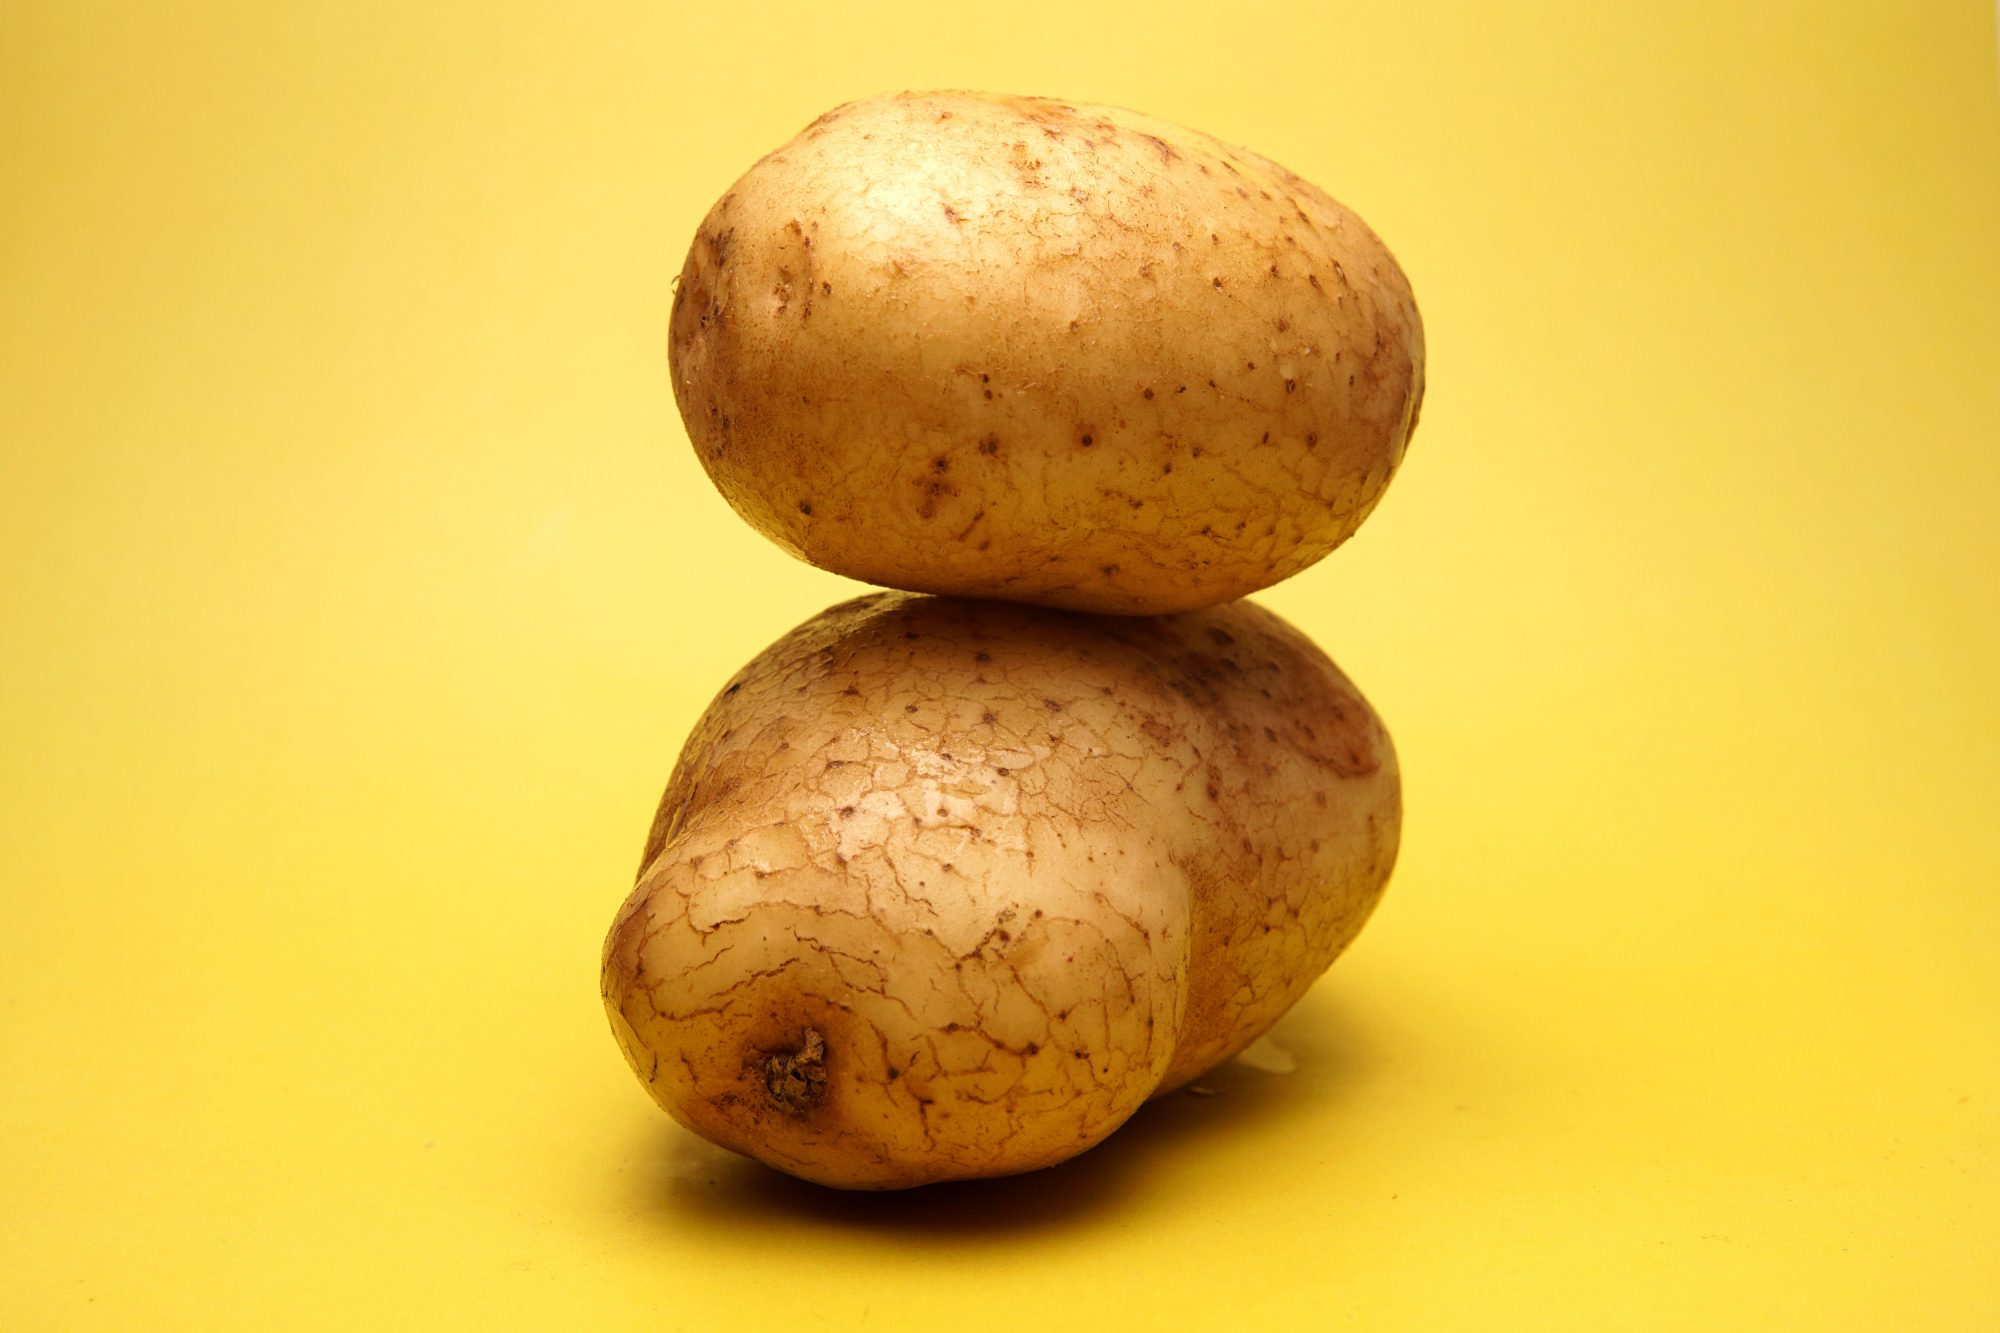 Do You Really Need to Prick a Potato Before Baking It?